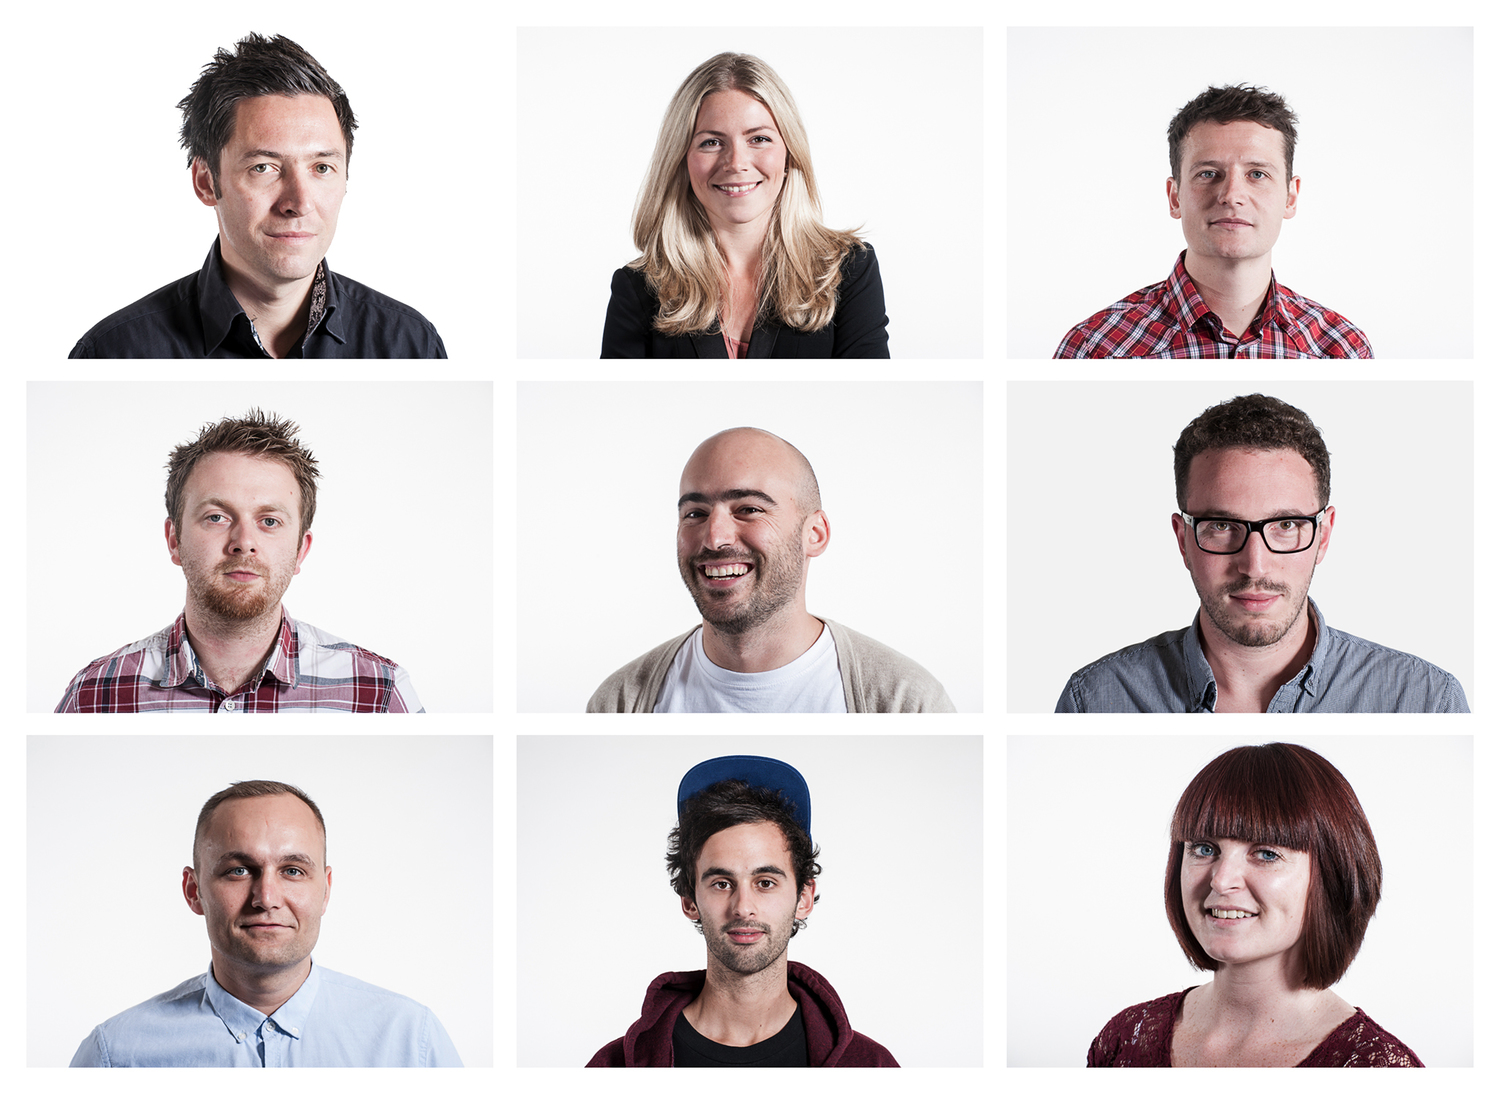 10 tips to look good in business head shots / professional